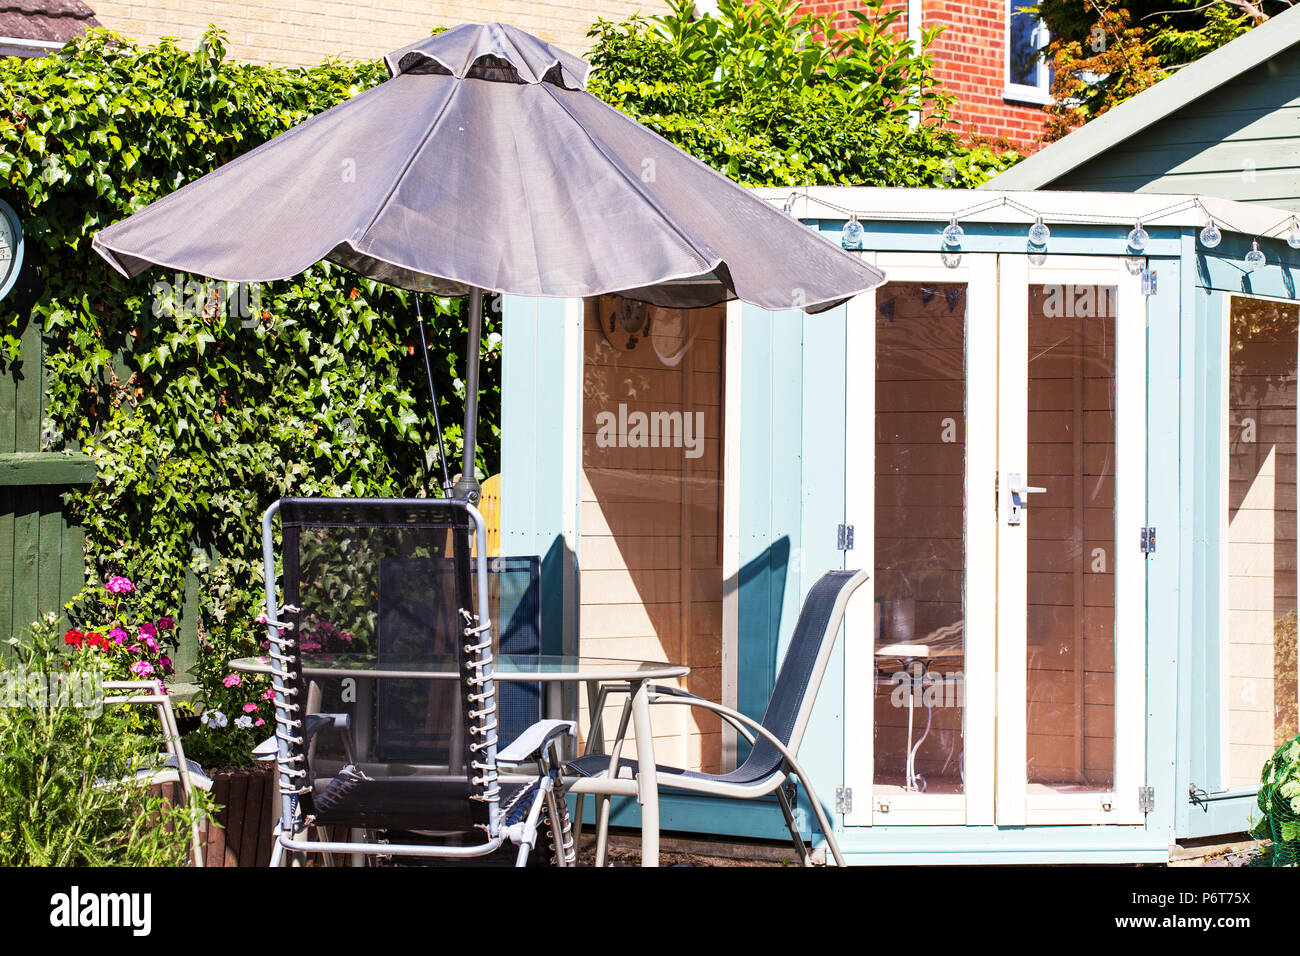 Summer house, Summer house garden UK, Summer house garden, Summer house in garden, summerhouse, UK, table and chairs outside UK, UK summerhouse, UK - Stock Image